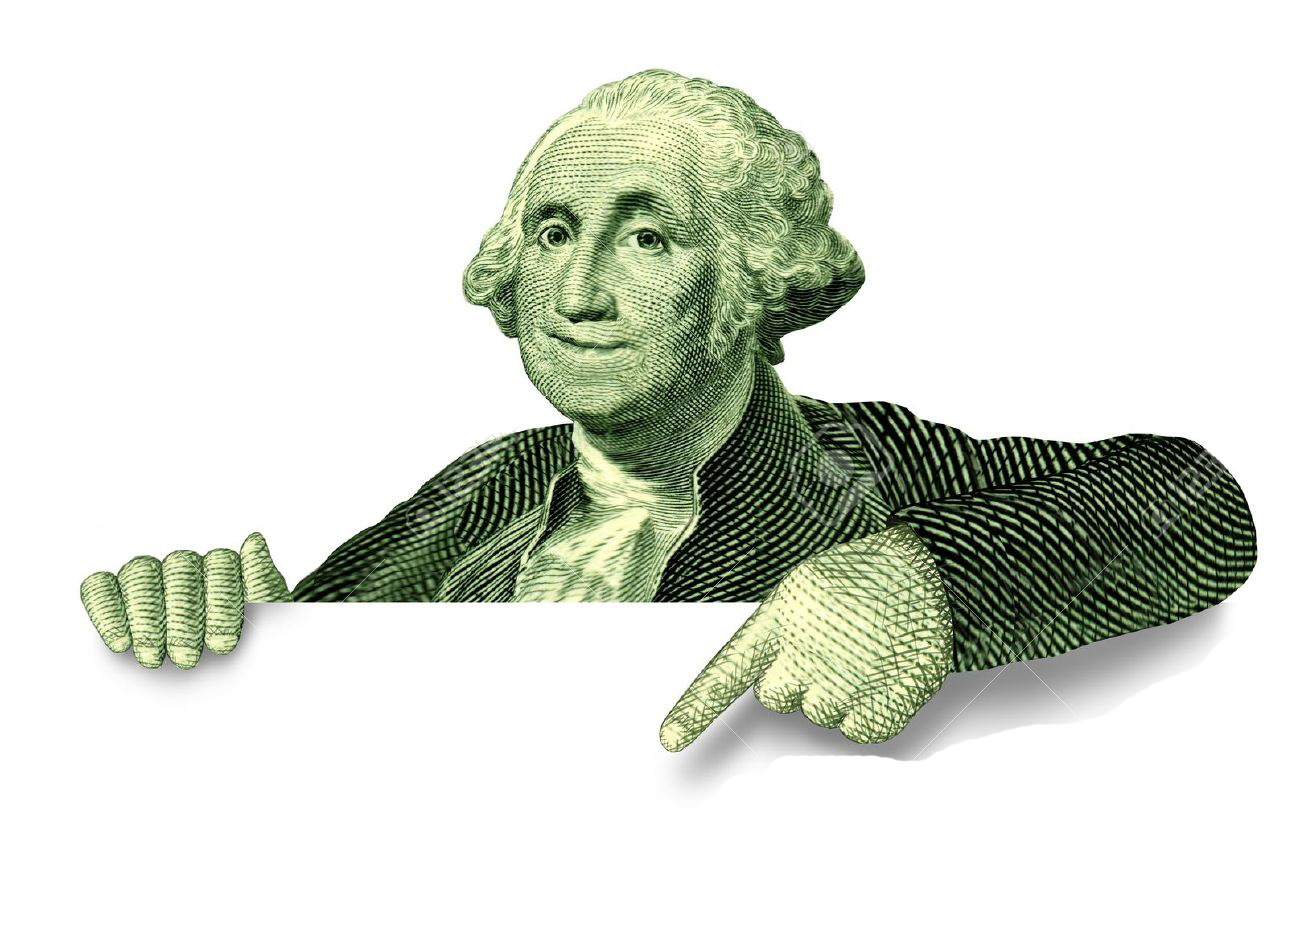 12353879-Savings-financial-blank-sign-with-George-Washington-pointing-to-an-announcement-on-a-white-backgroun-Stock-Photo